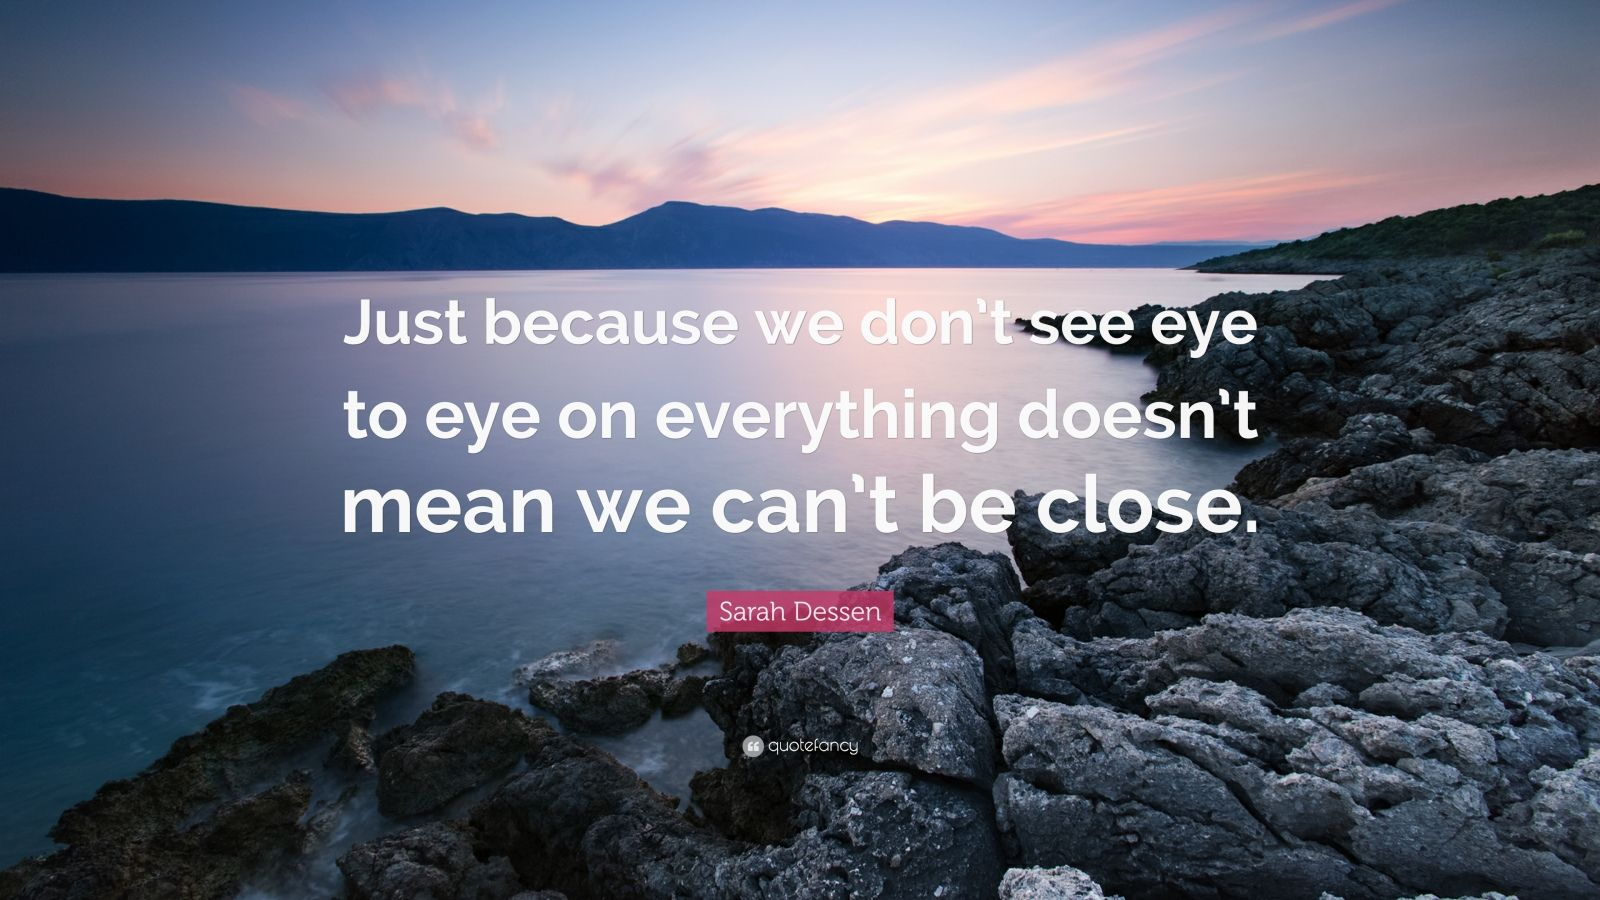 """Sarah Dessen Quote: """"Just because we don't see eye to eye on everything doesn't mean we can't be close."""""""